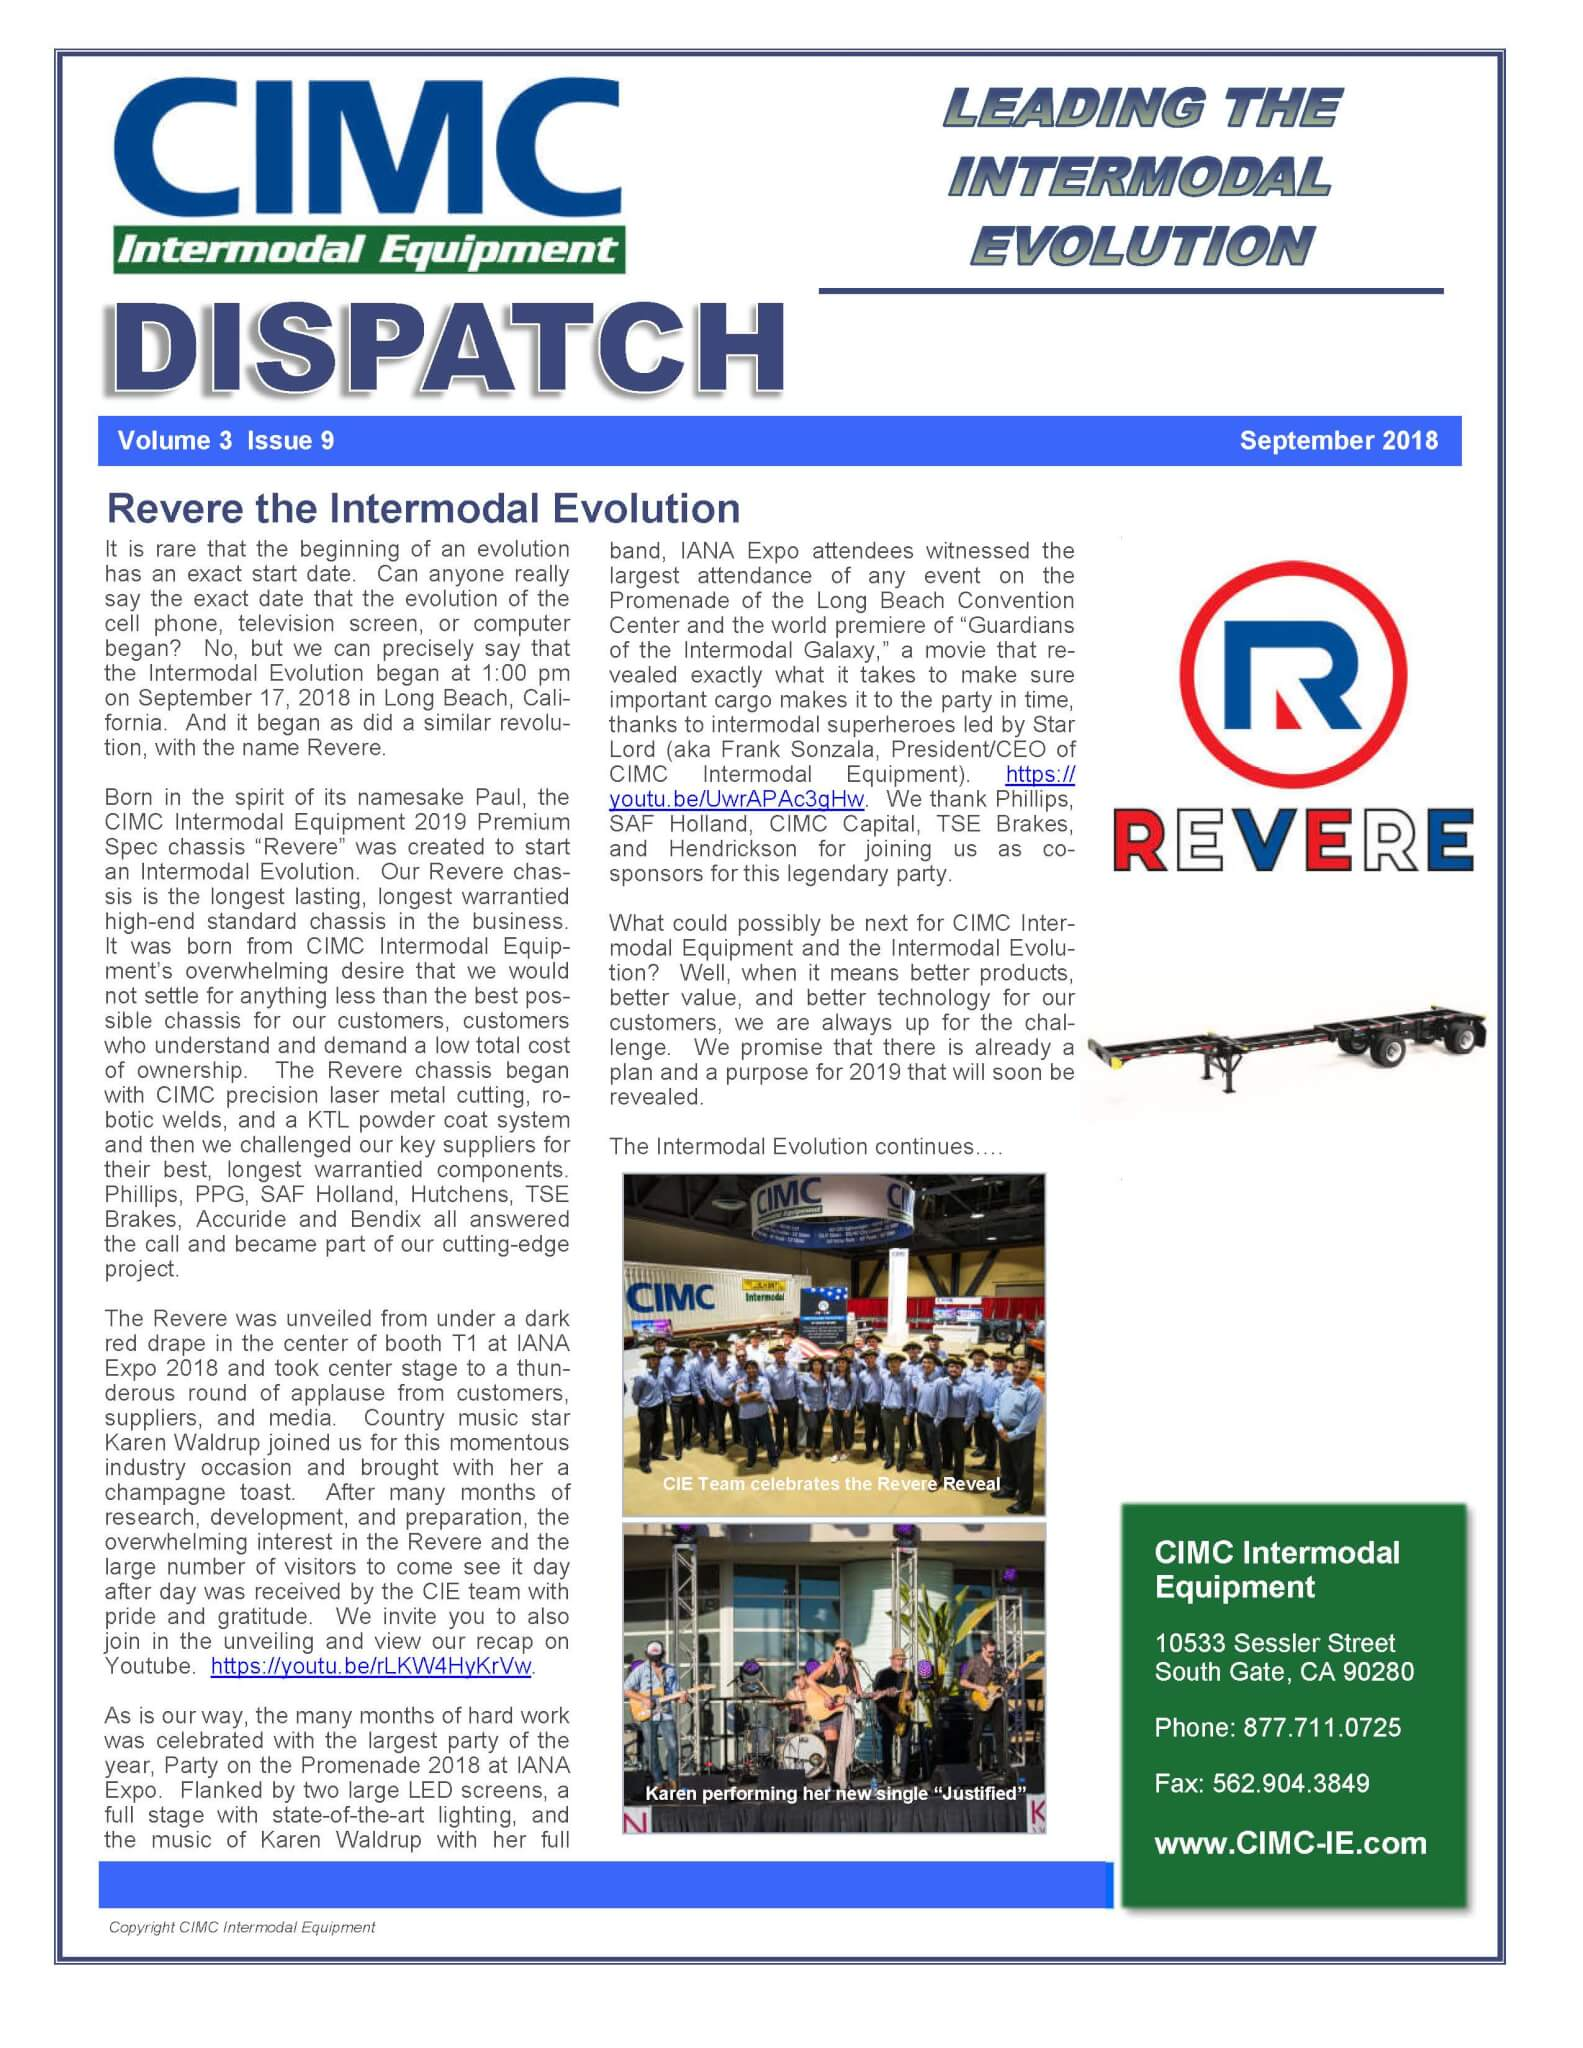 CIMC Dispatch September 2018